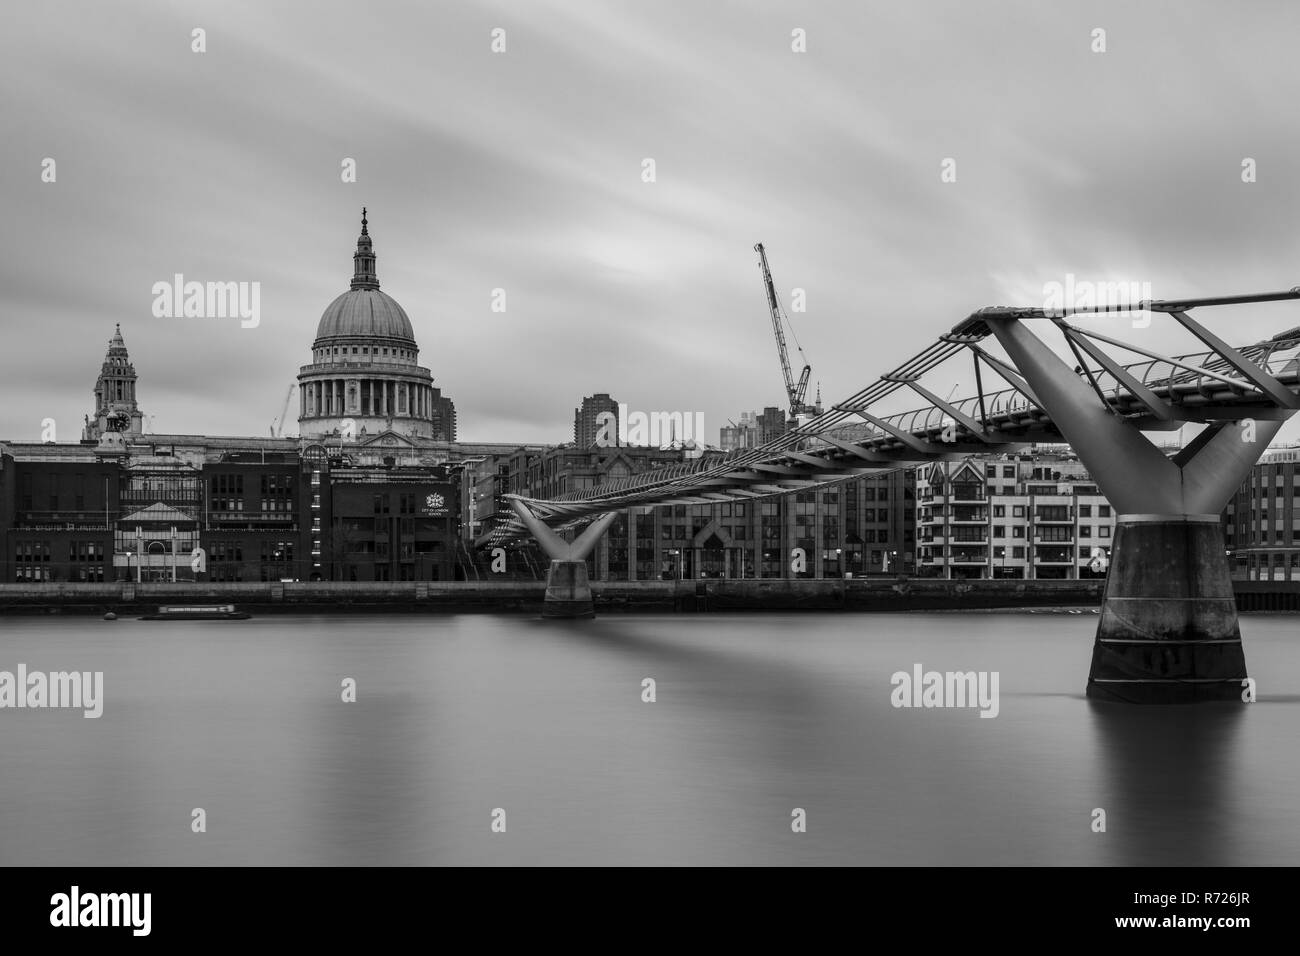 London, England, UK - April 3, 2018: The River Thames flows under London's Millennium Bridge, with St Paul's Cathedral and office blocks of the City f - Stock Image